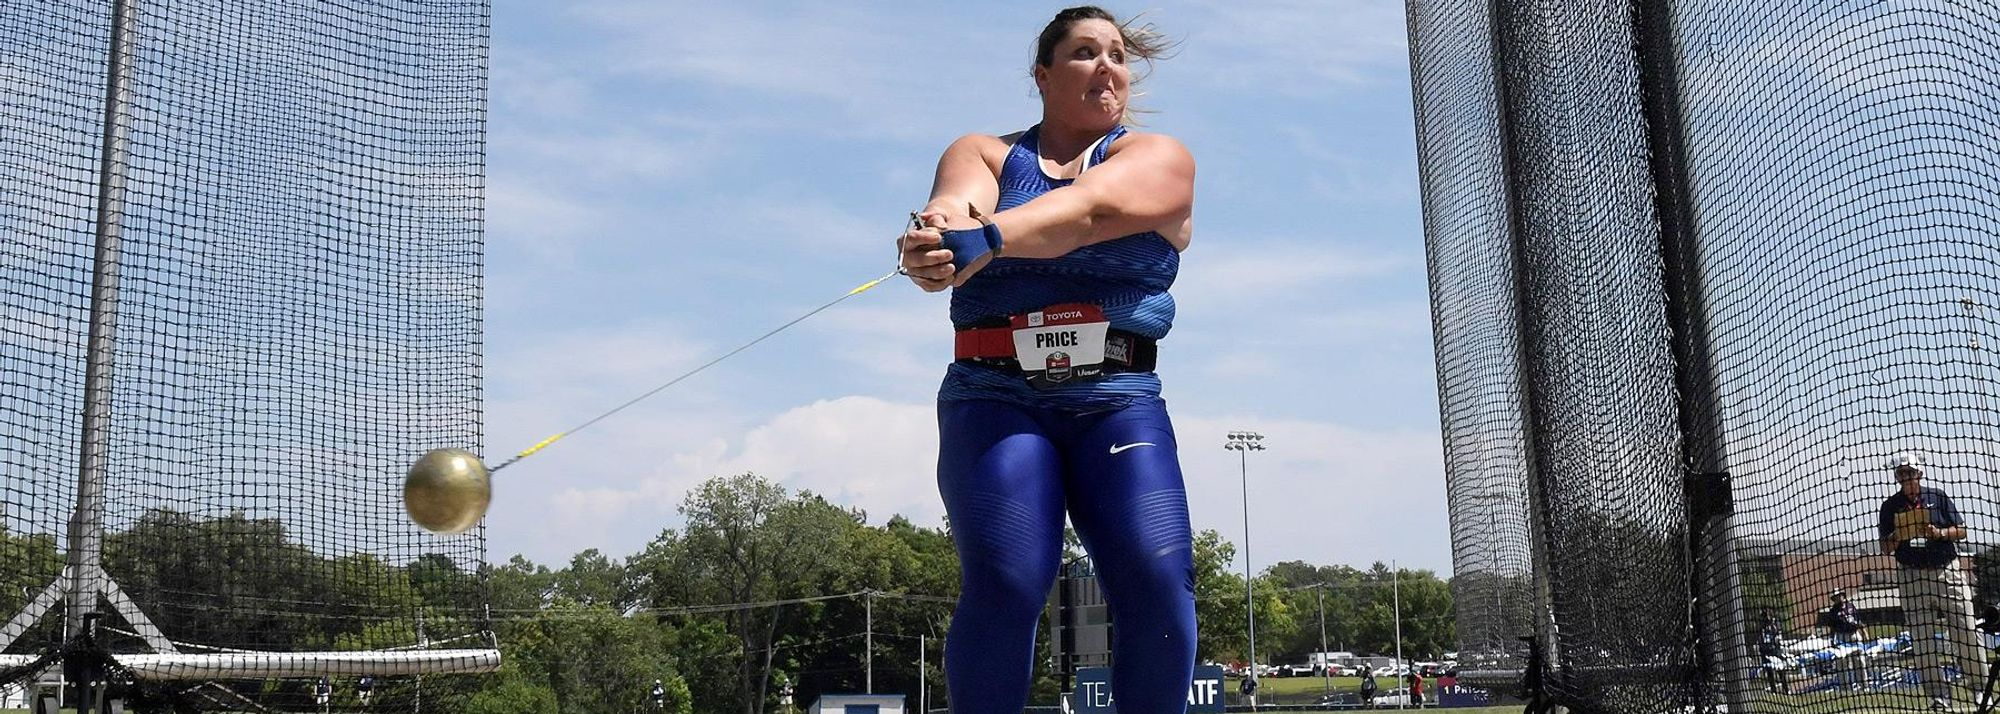 In just her second competition of the year, world champion DeAnna Price of the USA added 36 centimetres to her own North American hammer record on Friday (9) at the Tom Botts Invitational in Columbia, Missouri, winning with 78.60m.